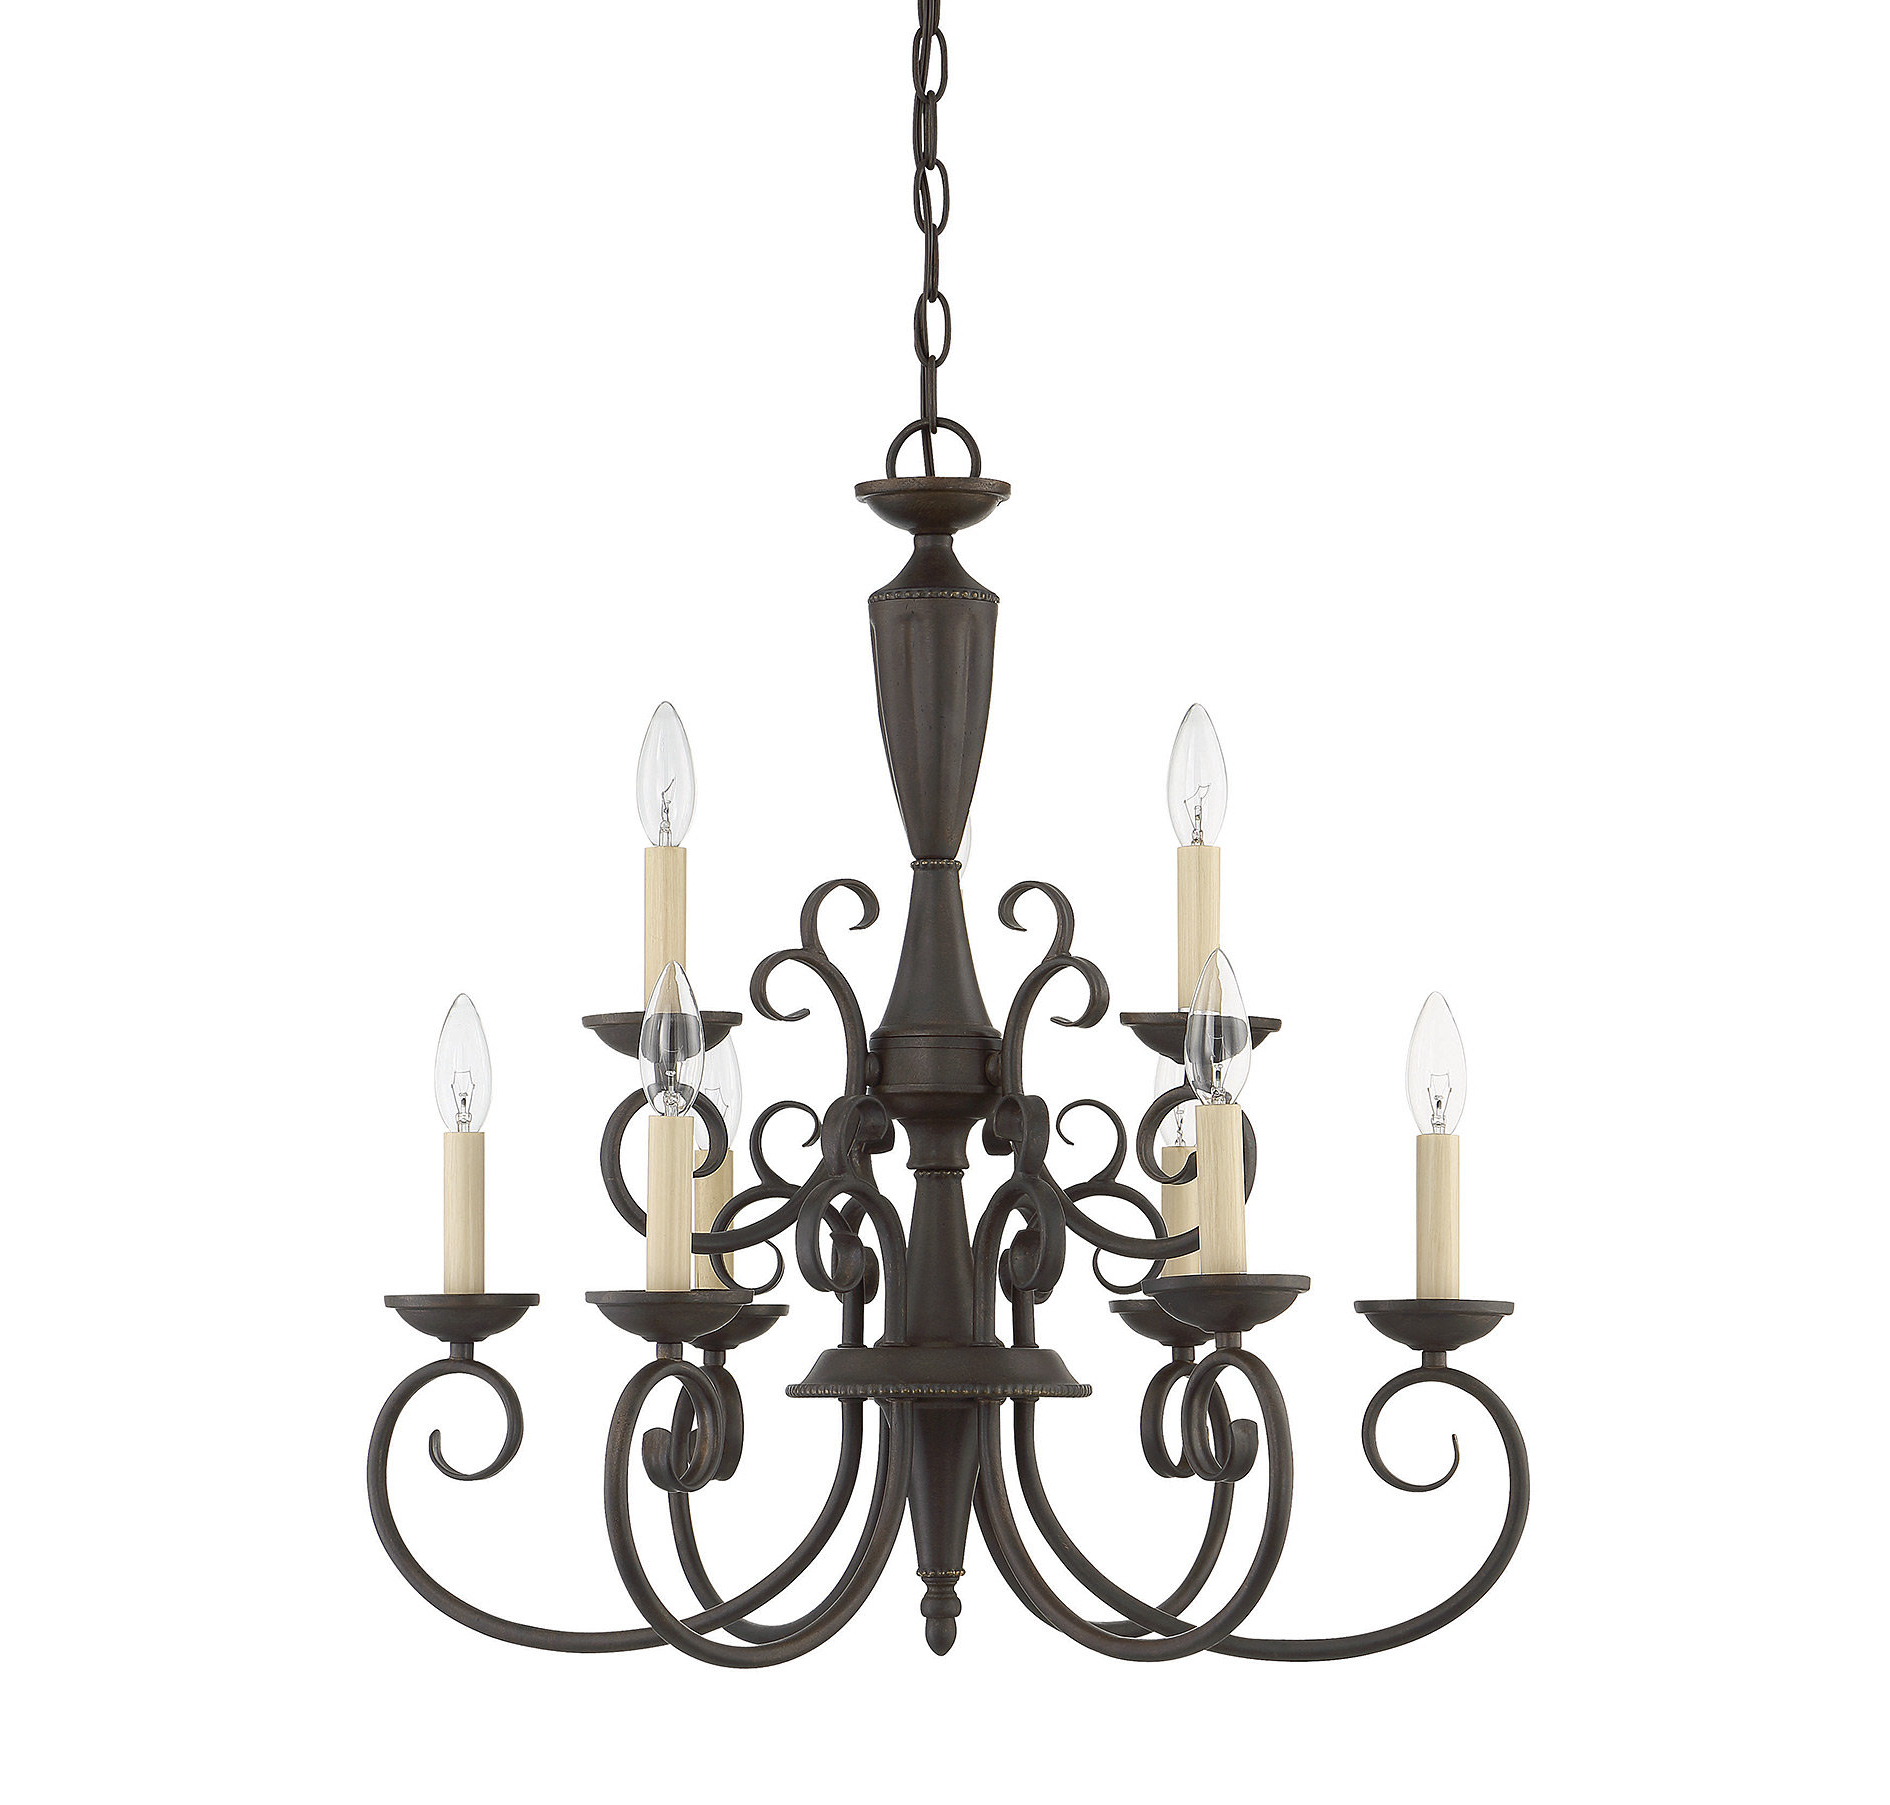 Wayfair Intended For Giverny 9 Light Candle Style Chandeliers (View 8 of 20)